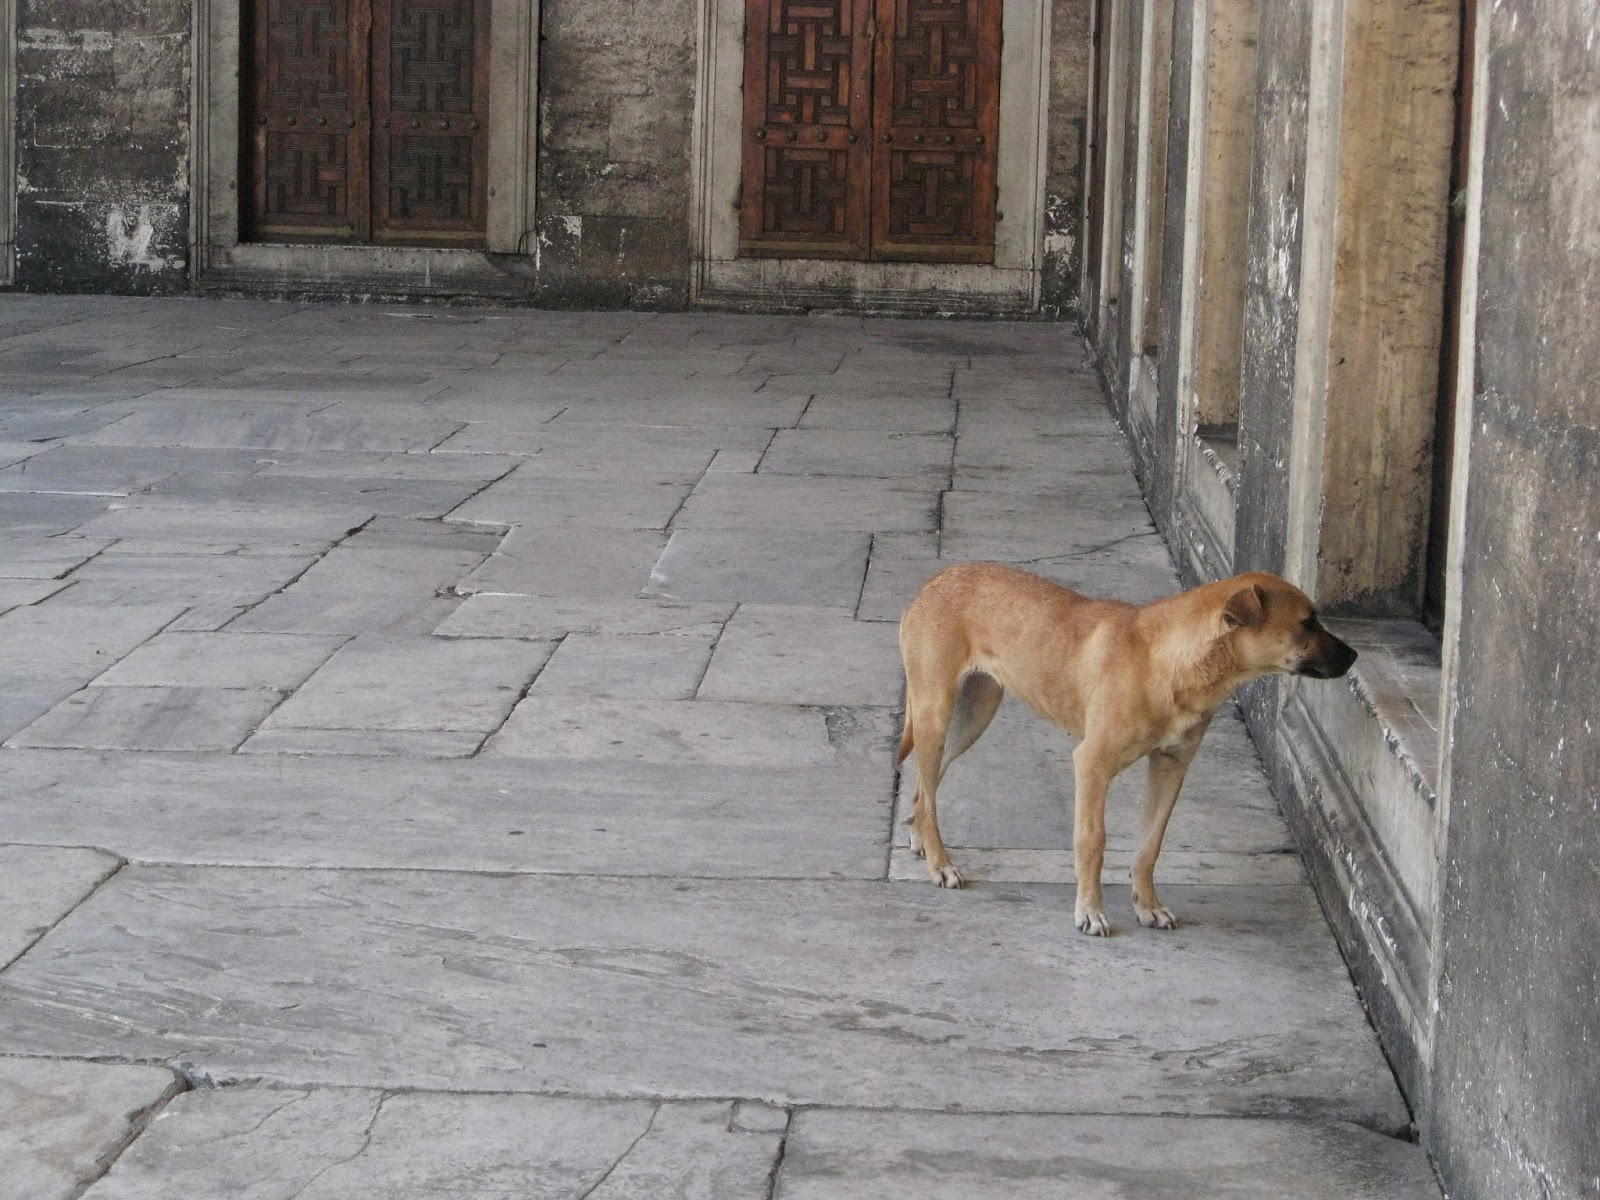 Istanbul - Stray dogs